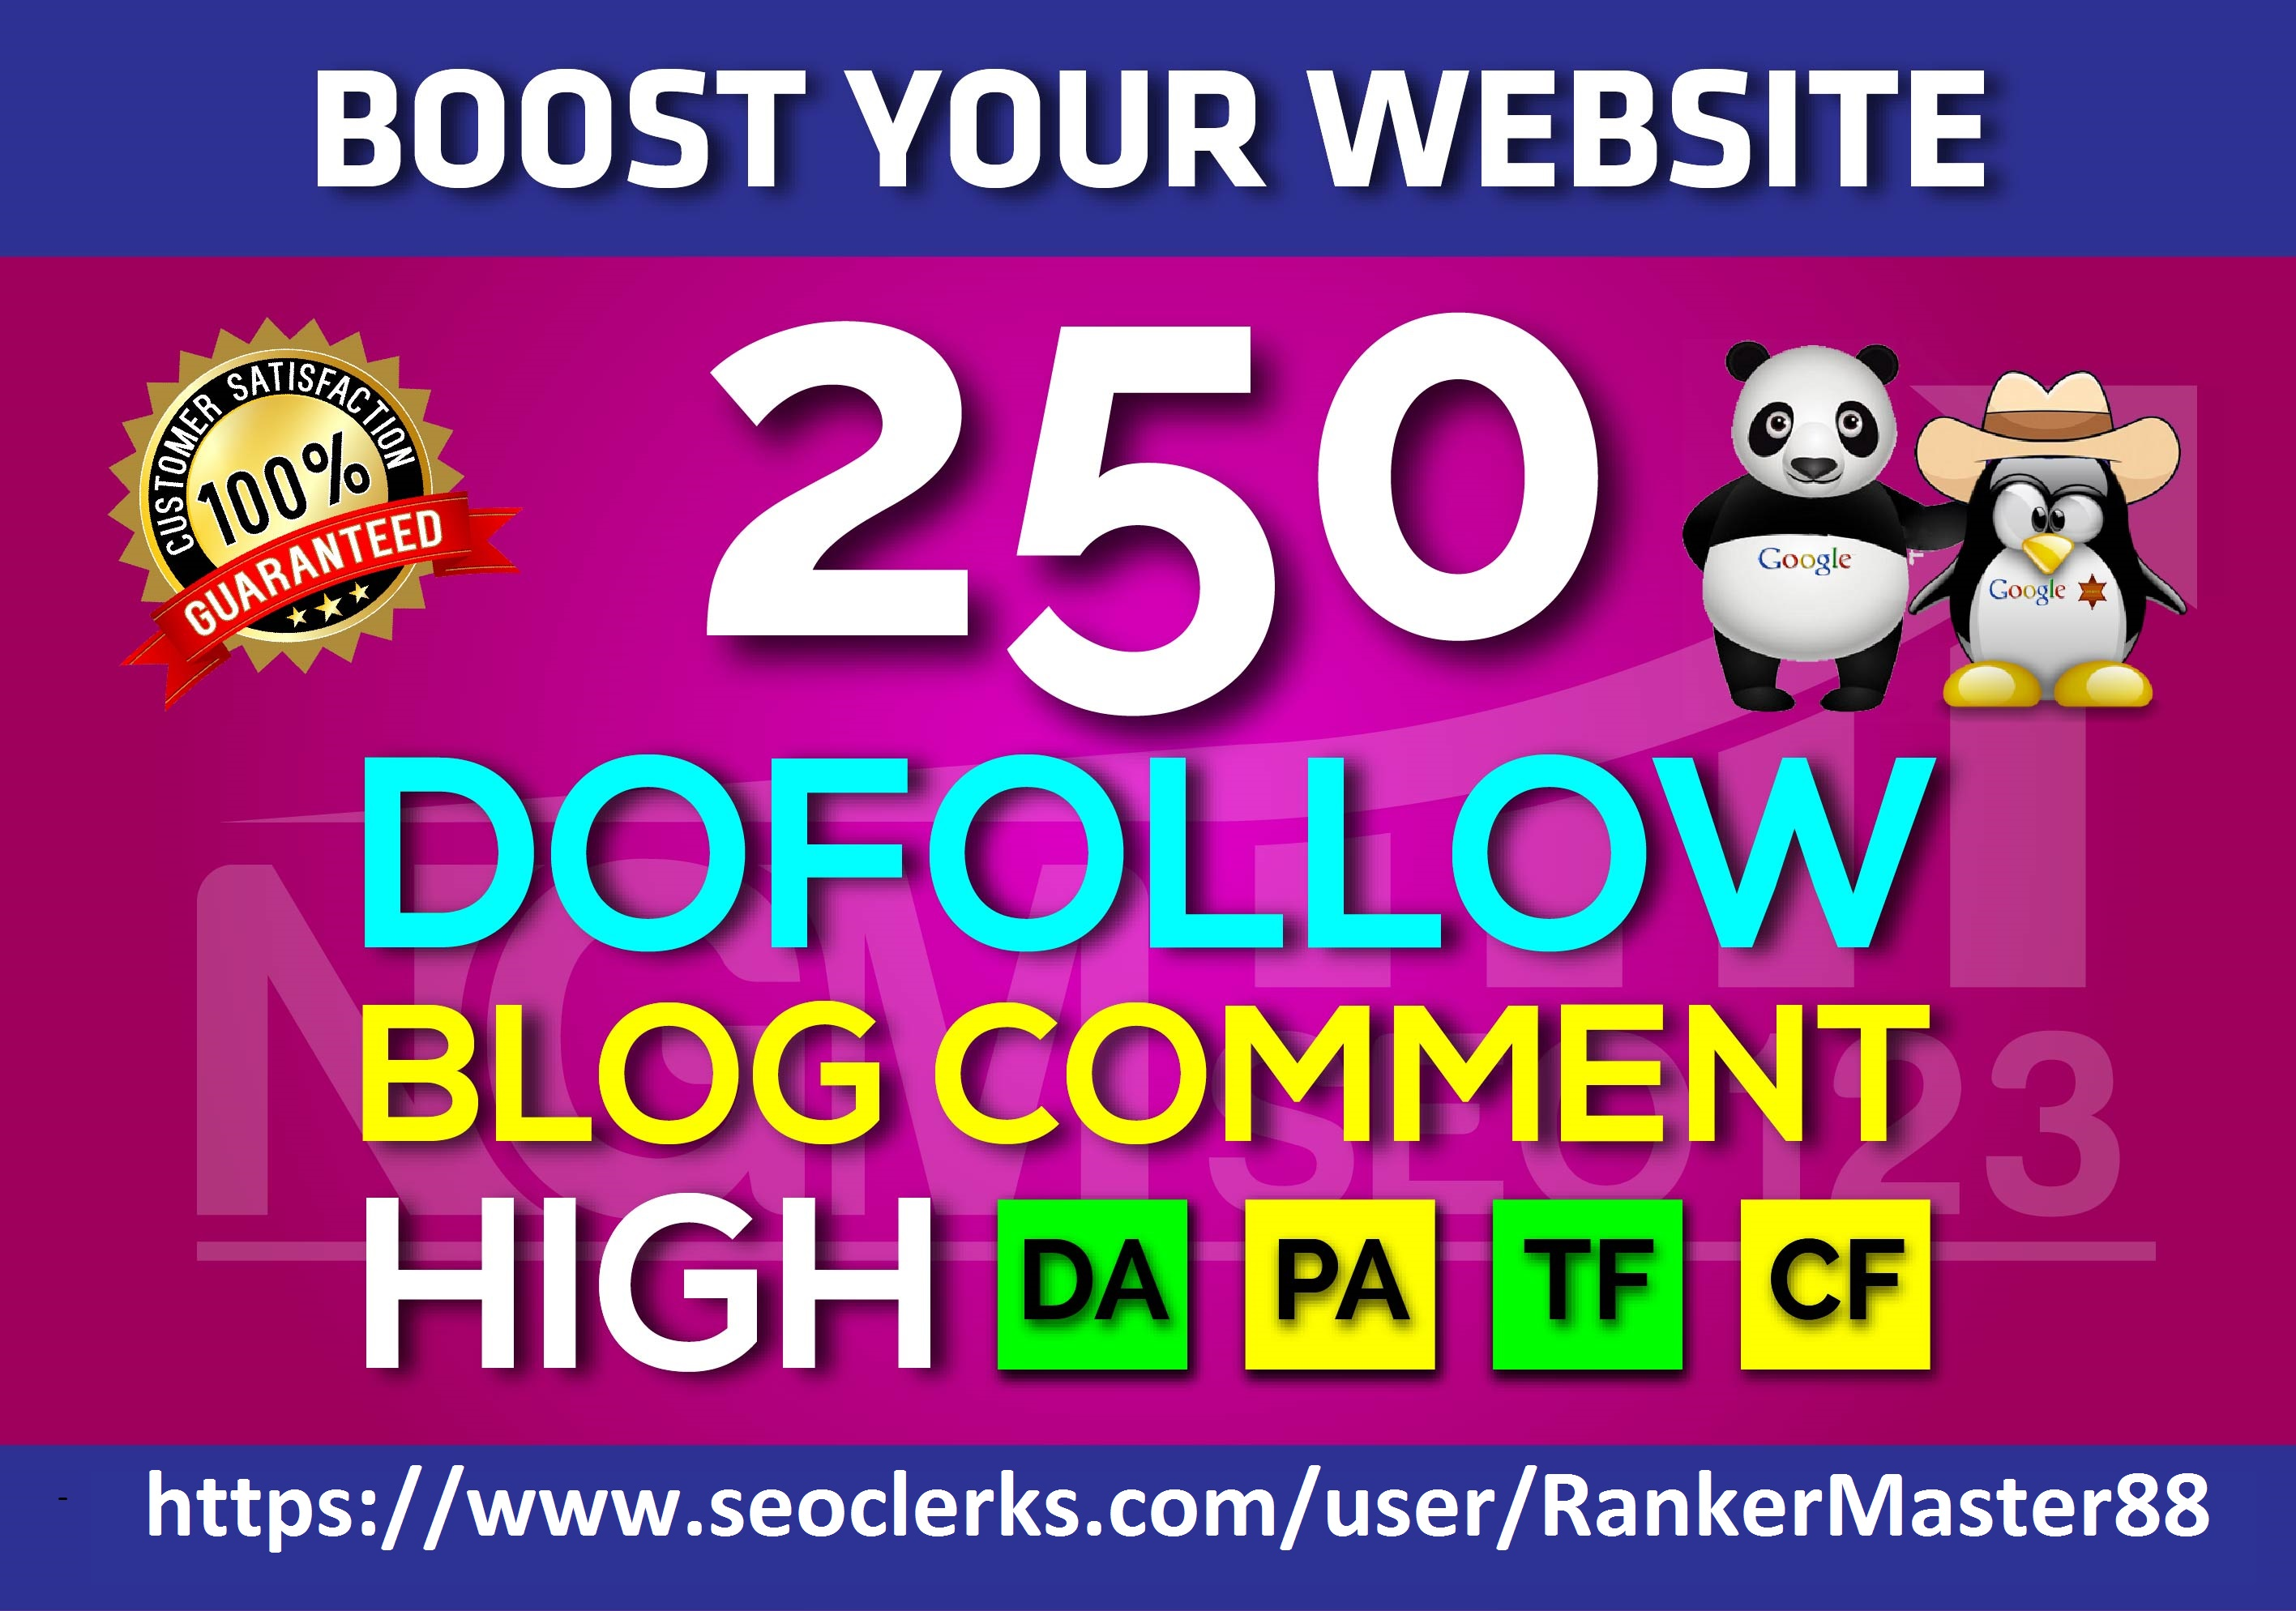 I Will Make 250 DoFollow Blog C0mments High DA PA TF CF for Rank your Website